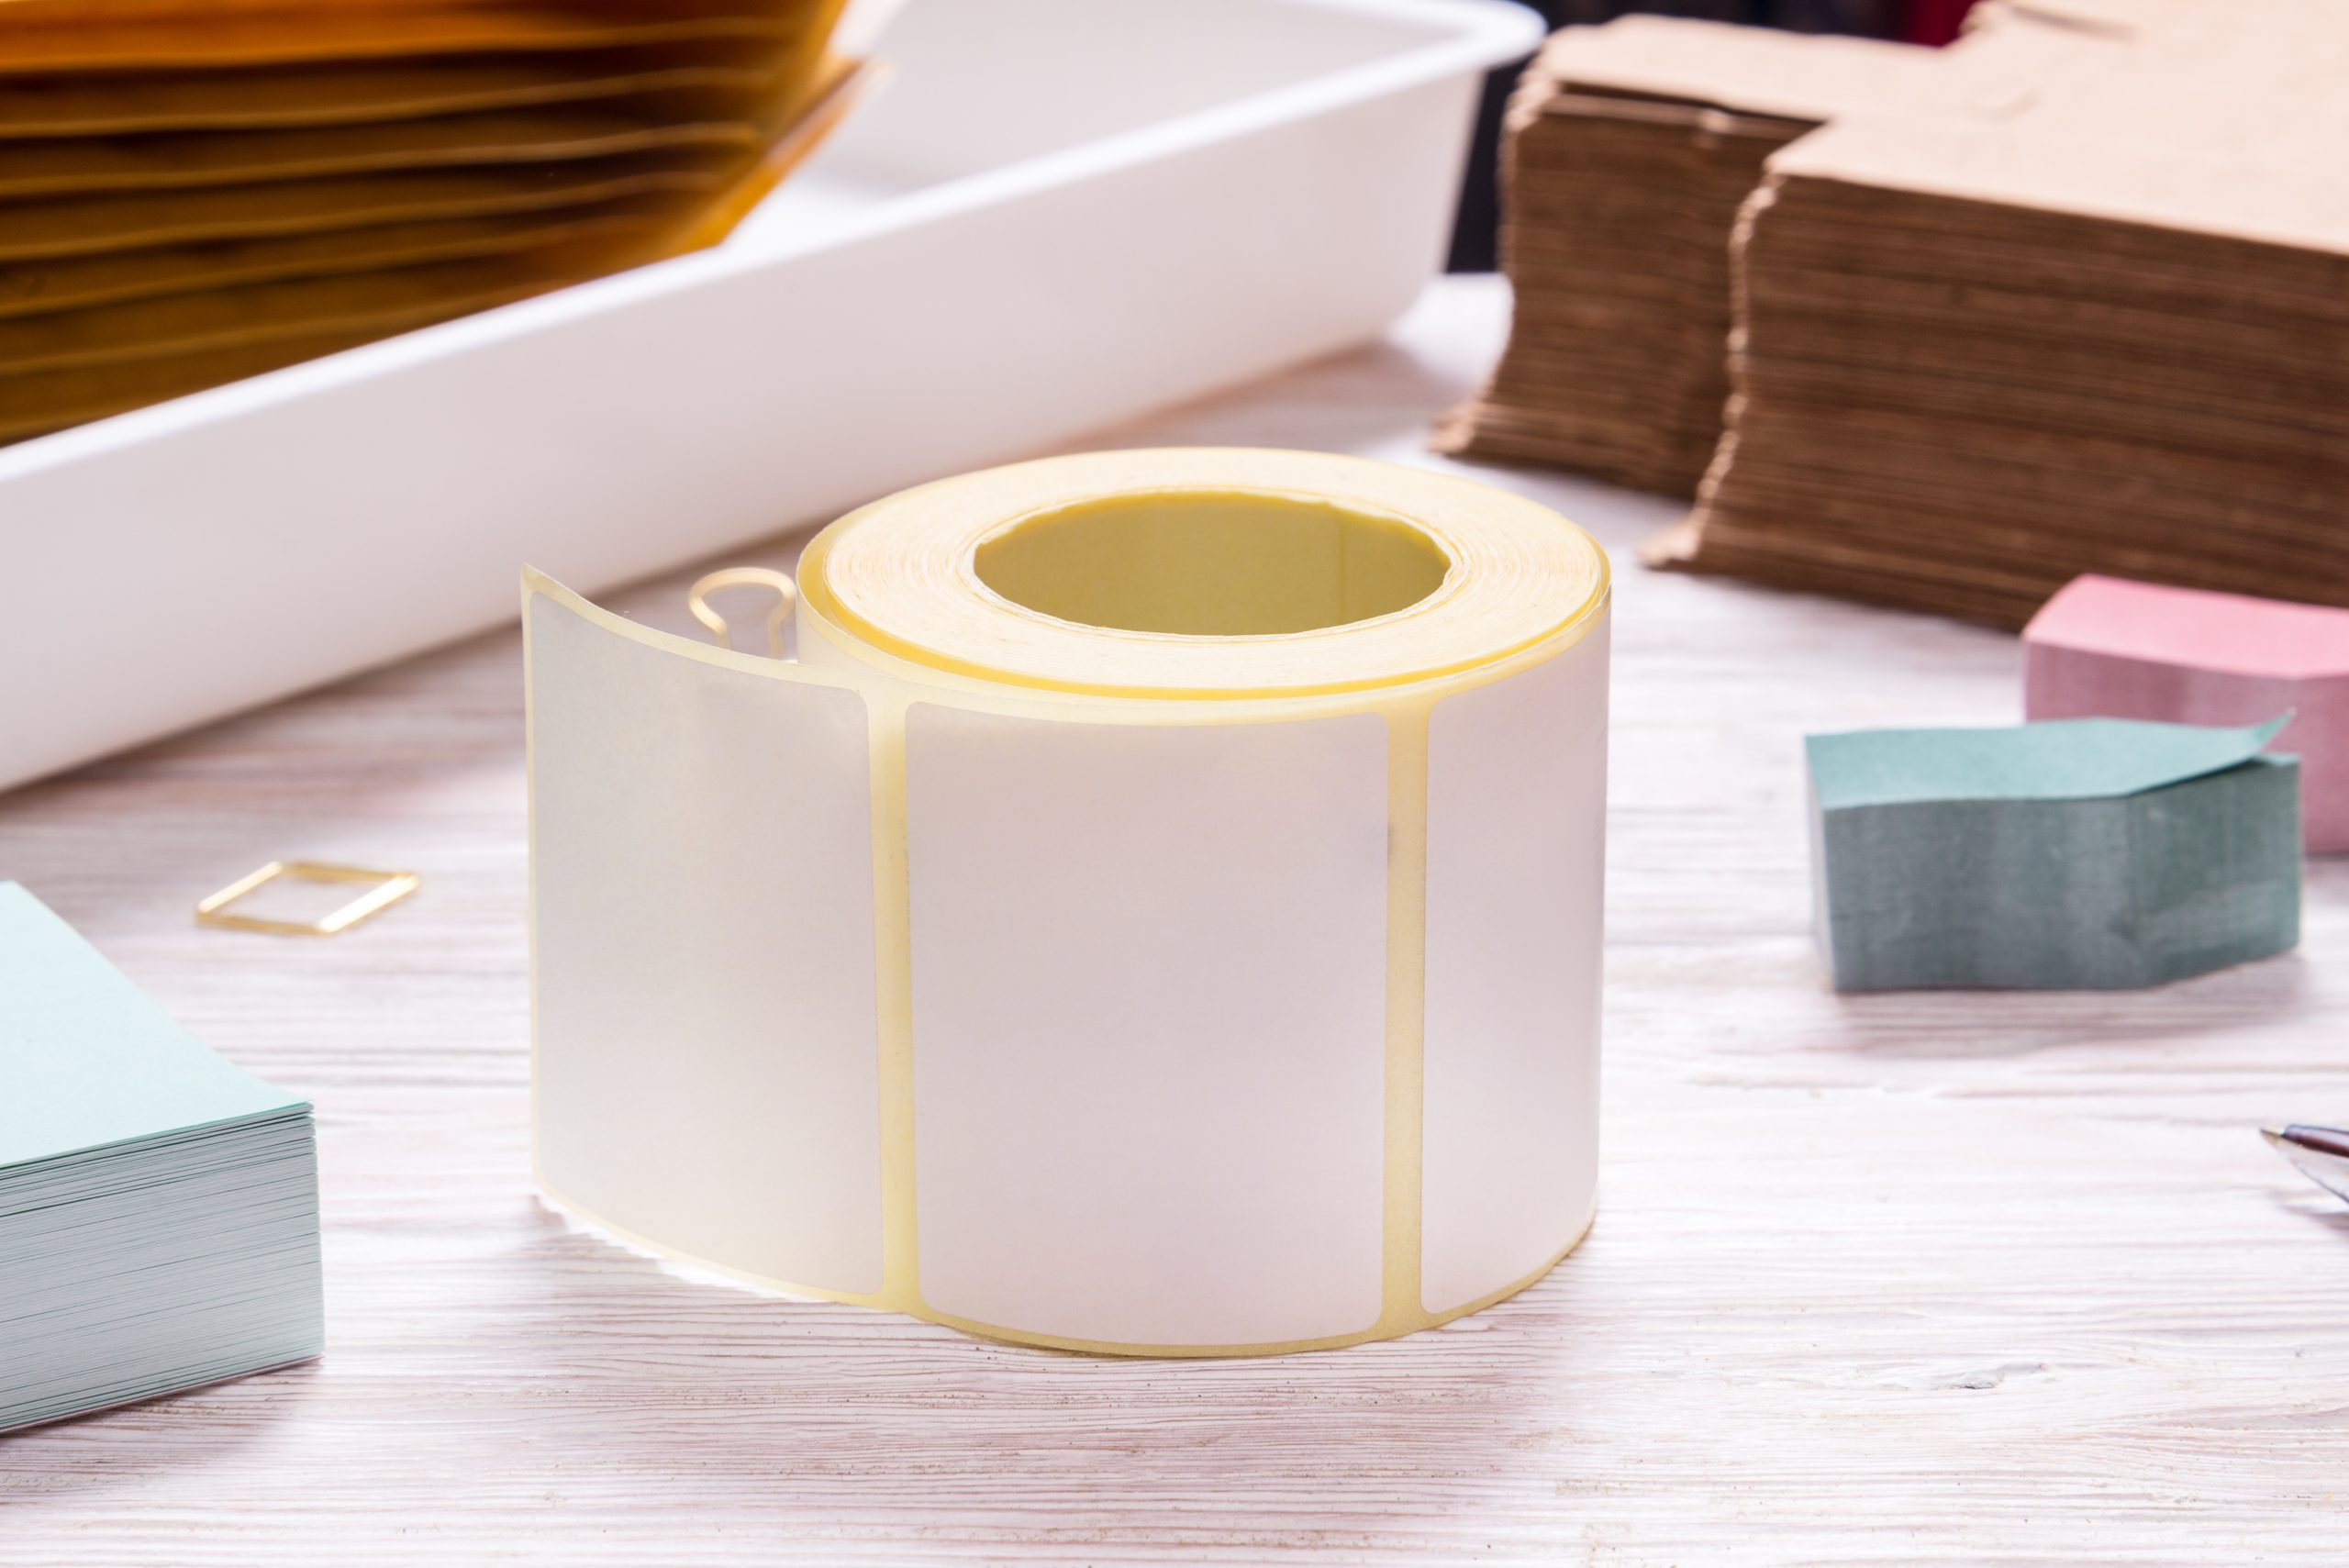 White  tape roll  on wooden office table